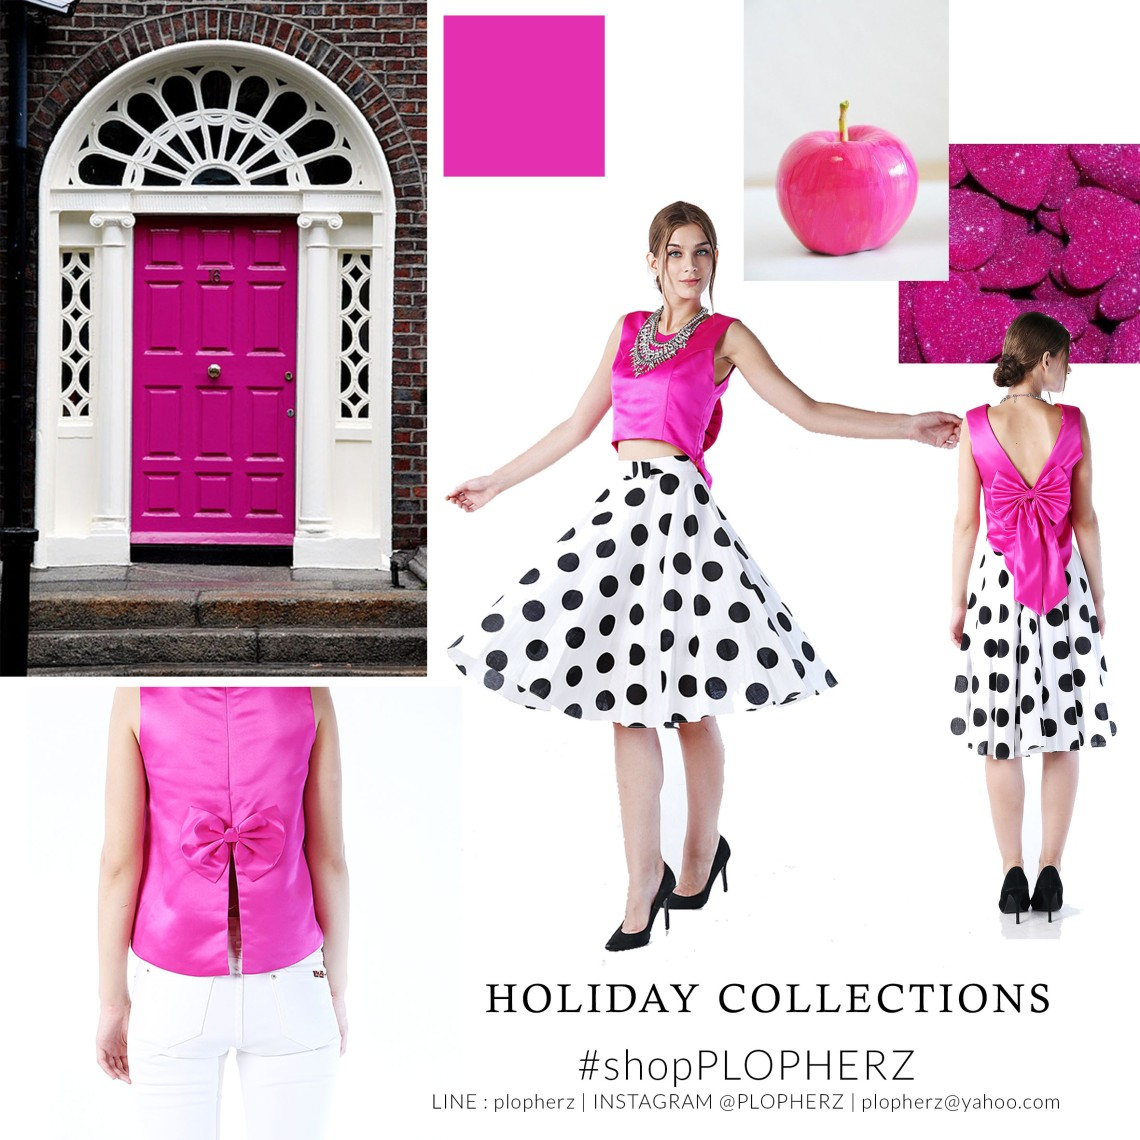 holiday collections moodboard PINK